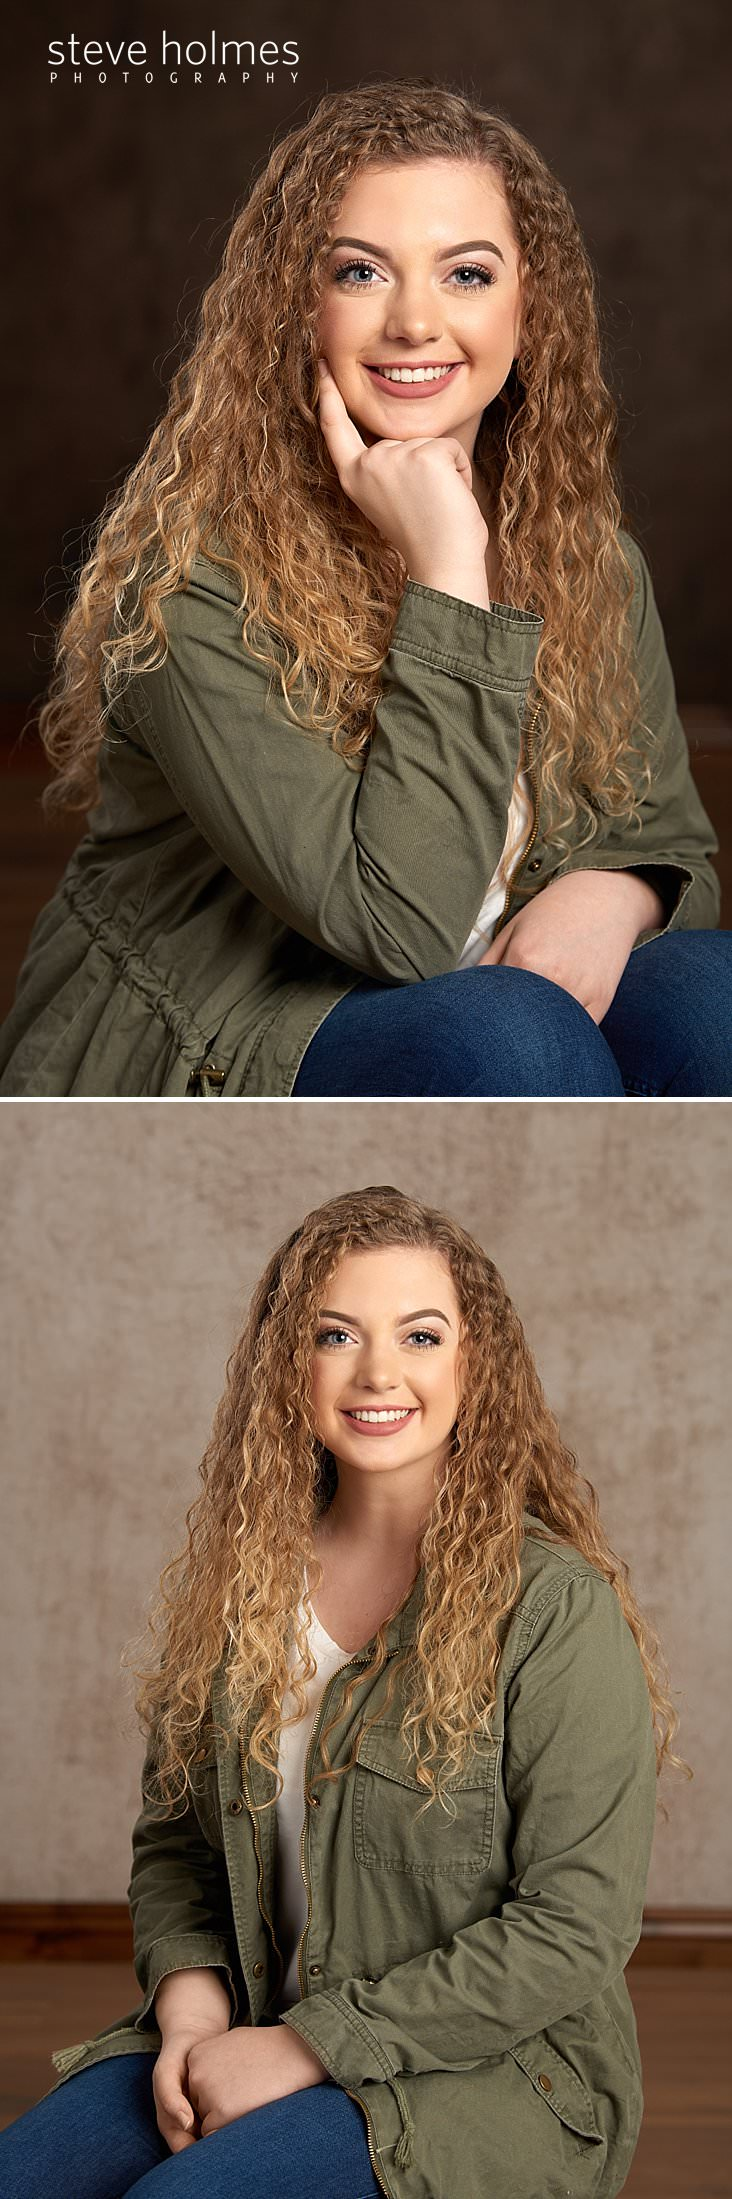 02_Teen with blonde, curly hair rests her hand on her cheek for studio senior portrait.jpg